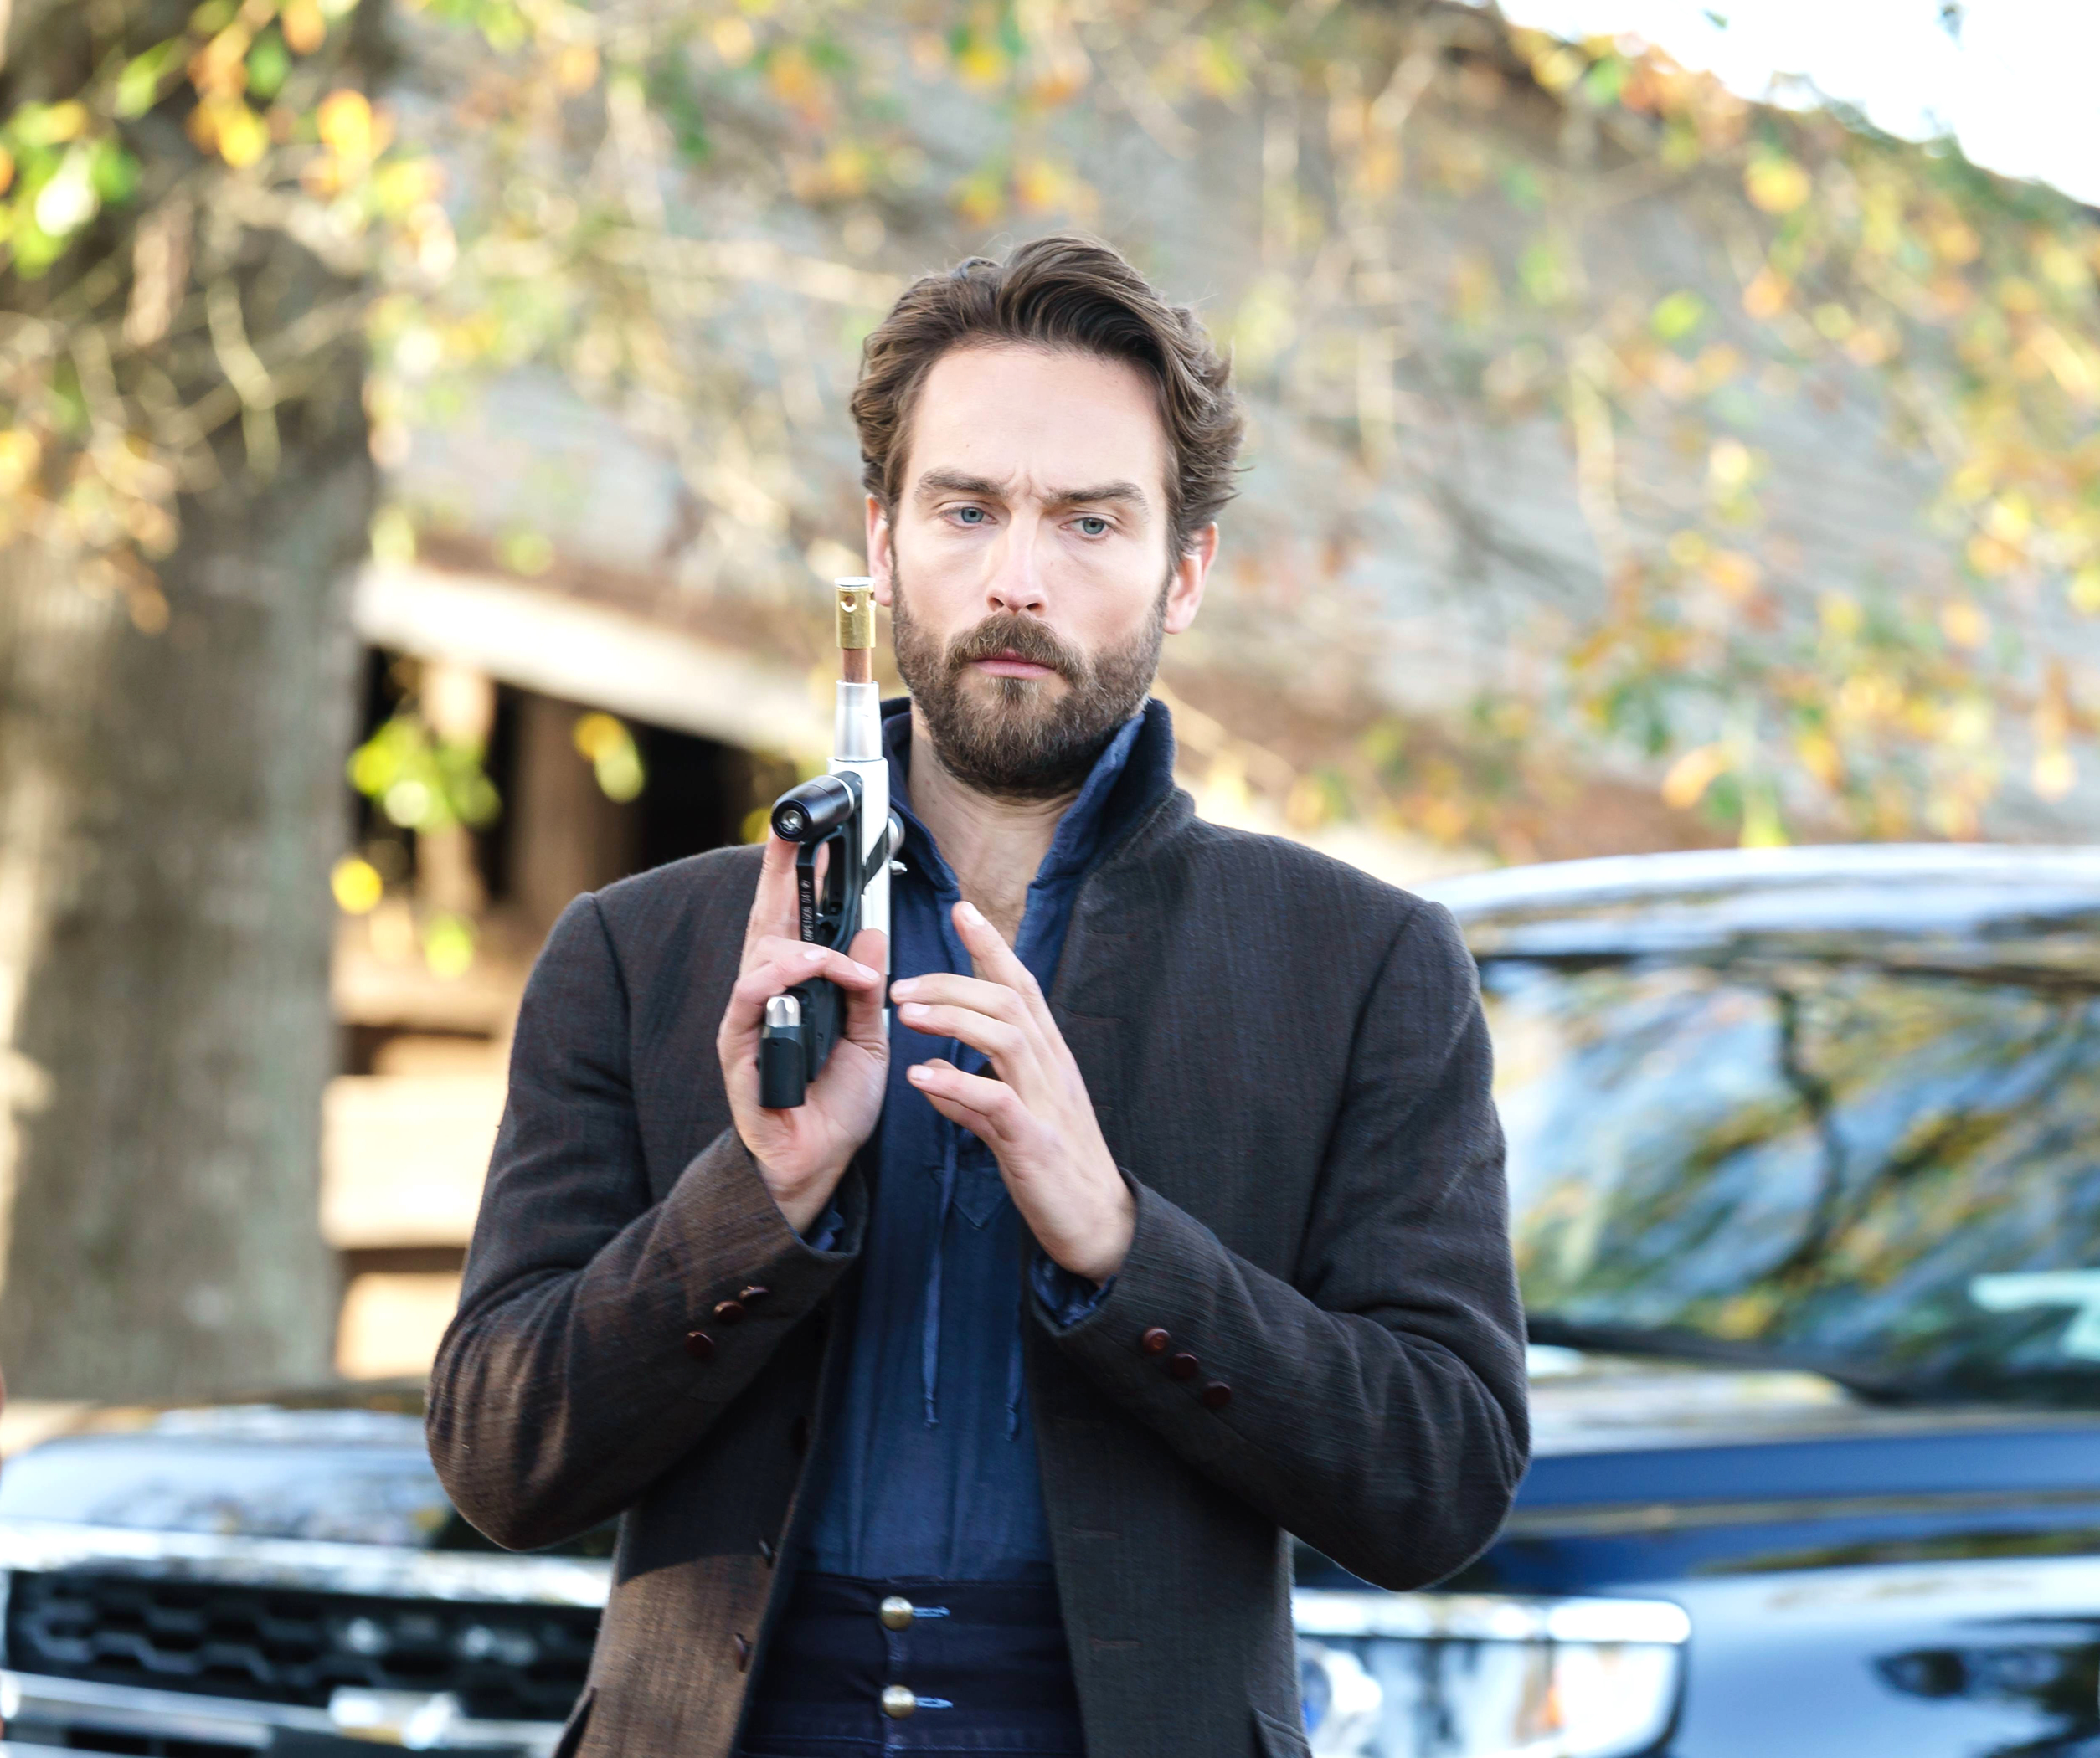 'Sleepy Hollow' S4 Eps 10 And 11 Preview: What Big Reveal